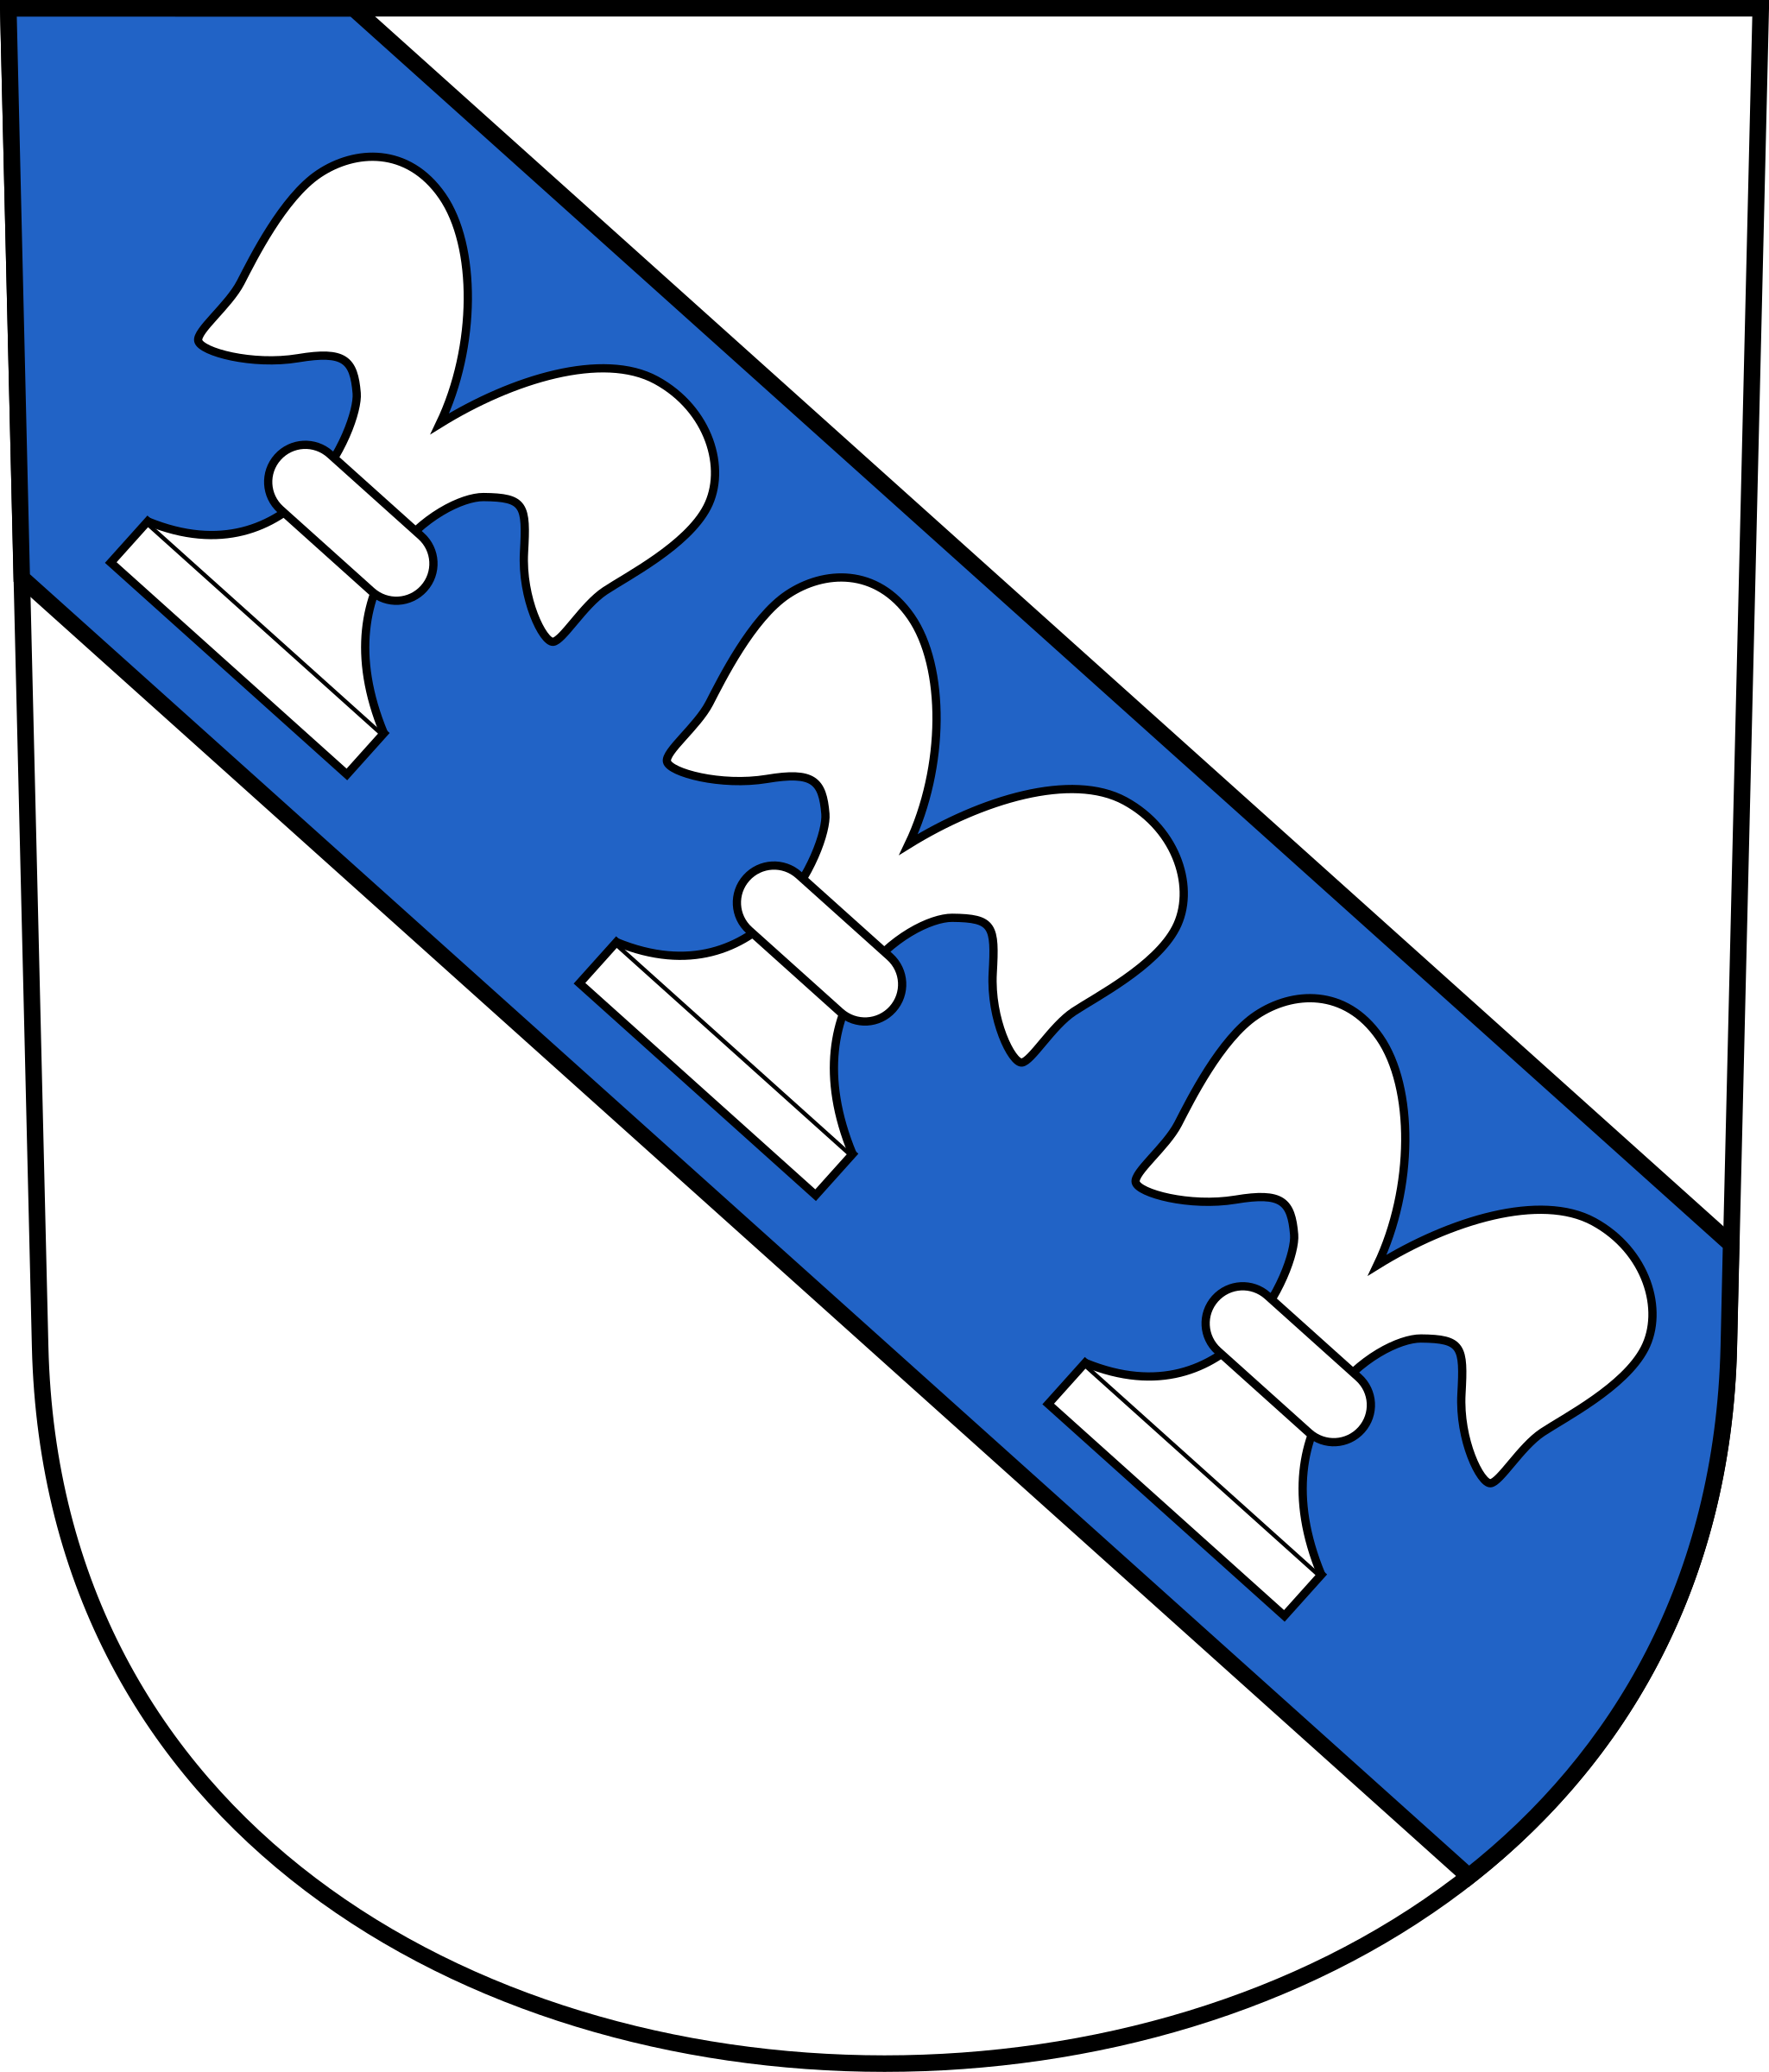 Illnau-effretikon - Coat of arms 2 by wipp